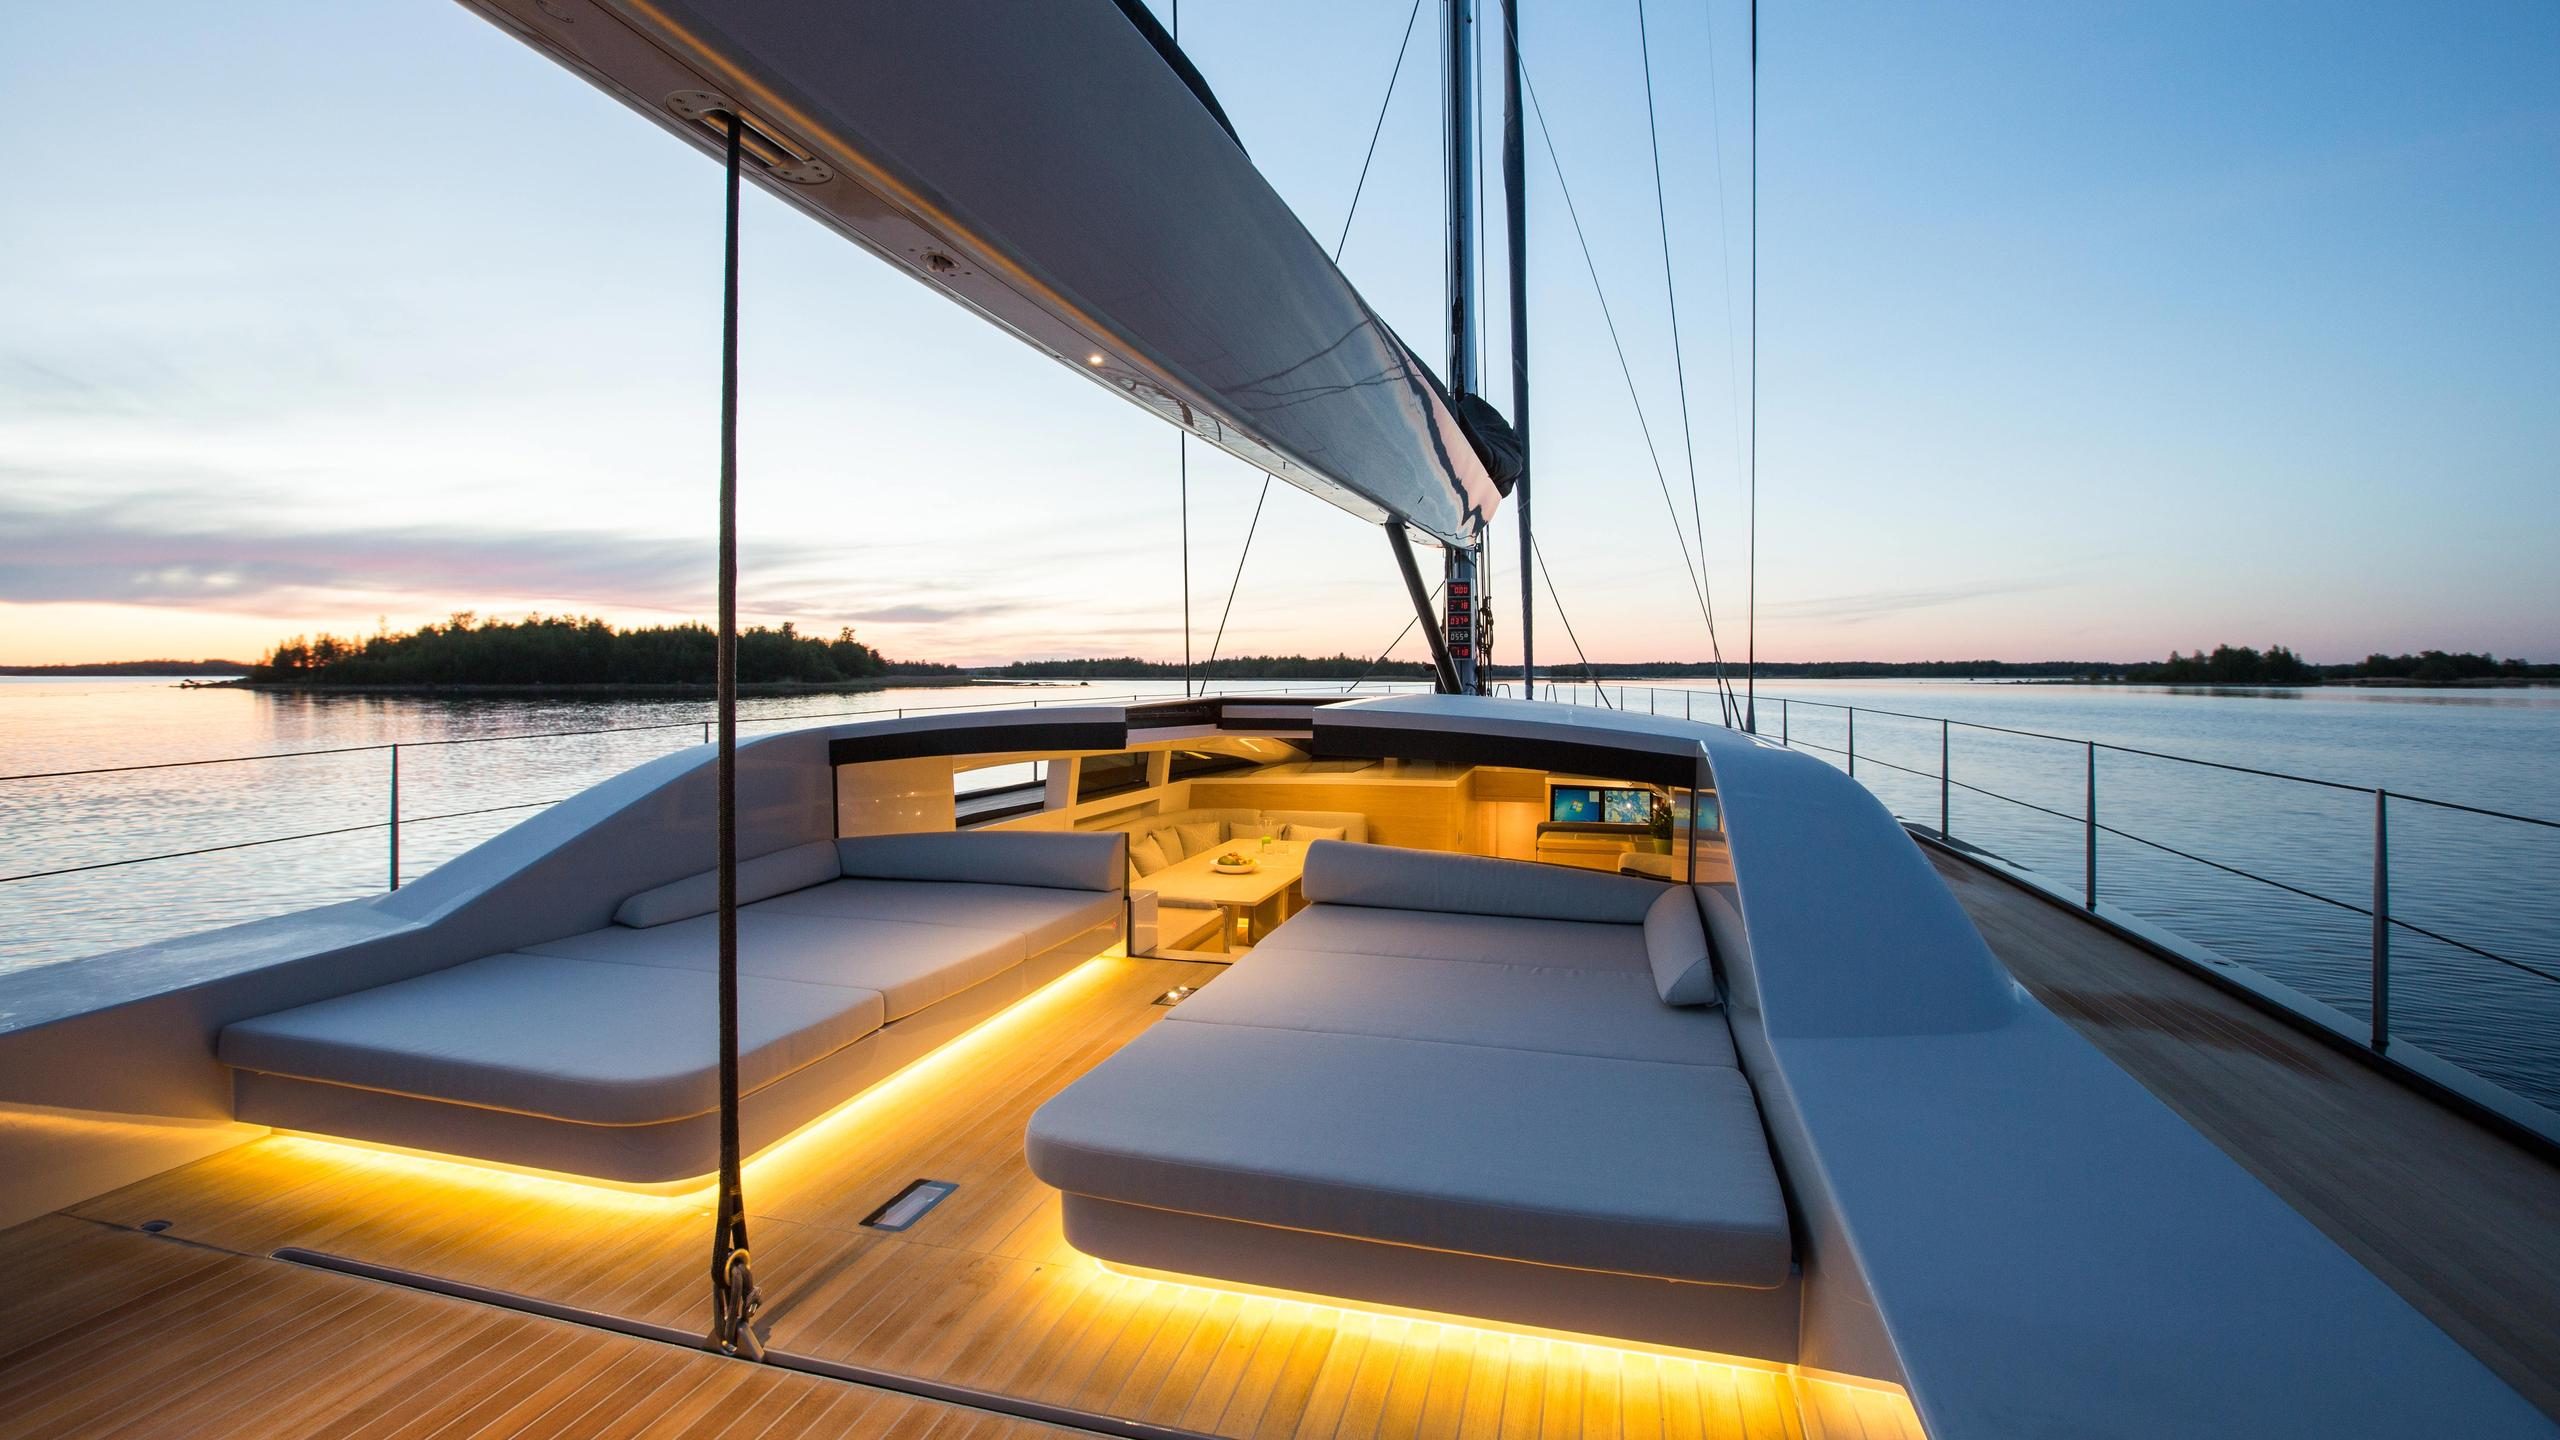 Winwin-sailing-yacht-baltic-2014-33m-deck-sunset